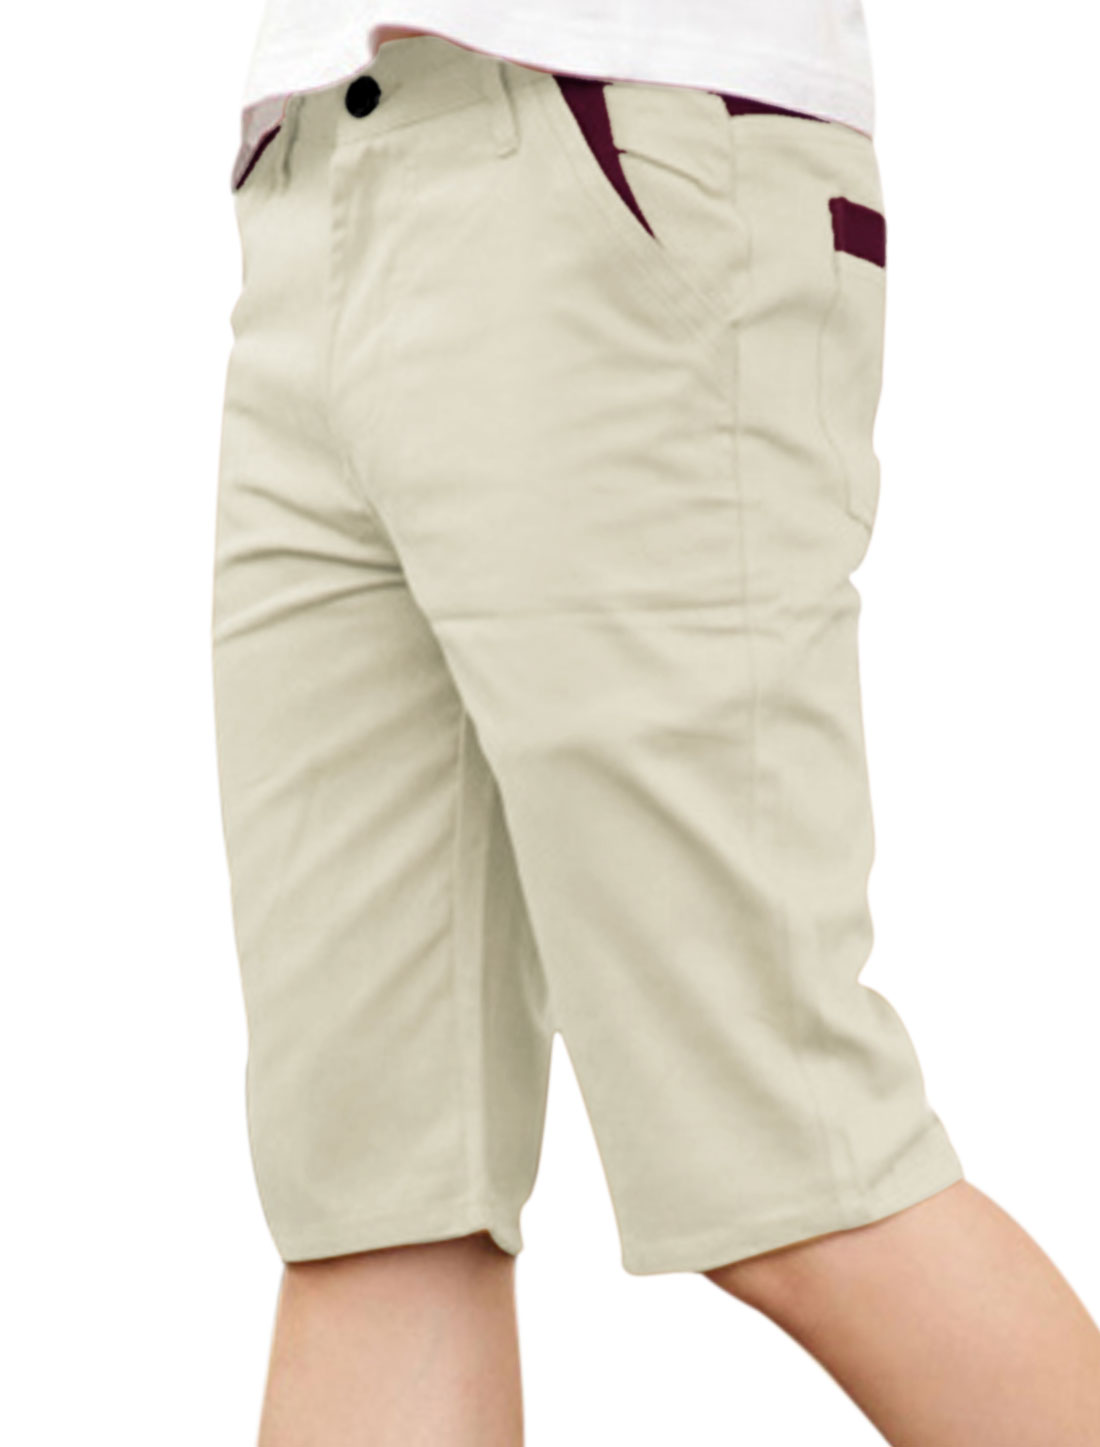 Men Mid Rise Belt Loop Zip Fly One Button Up Shorts Light Khaki W32